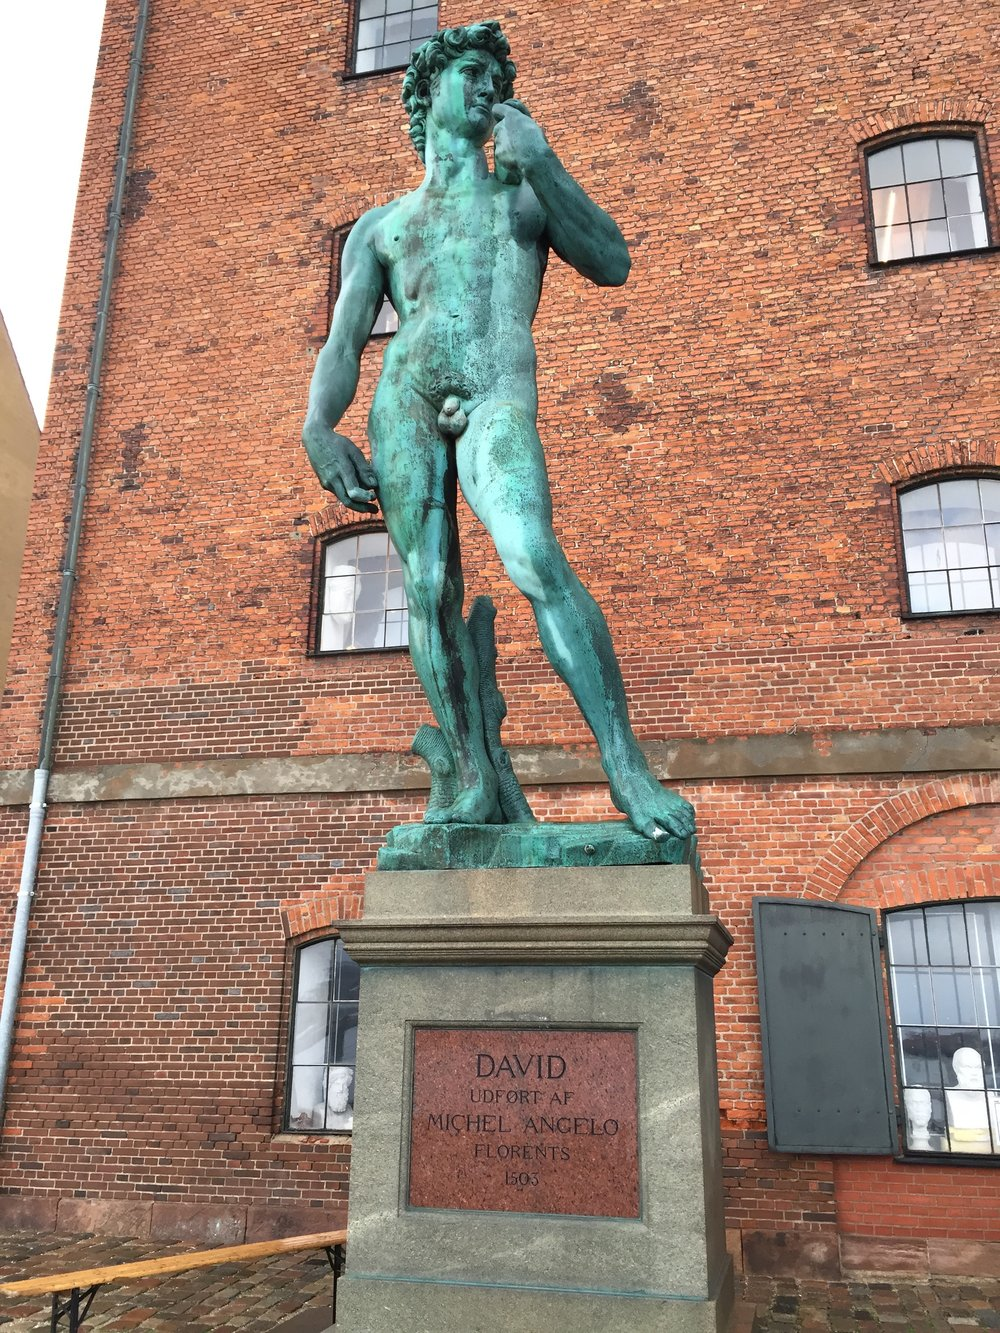 Replica of Michelangelo's David. A bronze cast stands in front of the Kongelige Afstøbningssamling, the Danish Royal Cast Collection at the Langelinie Promenade in Copenhagen.